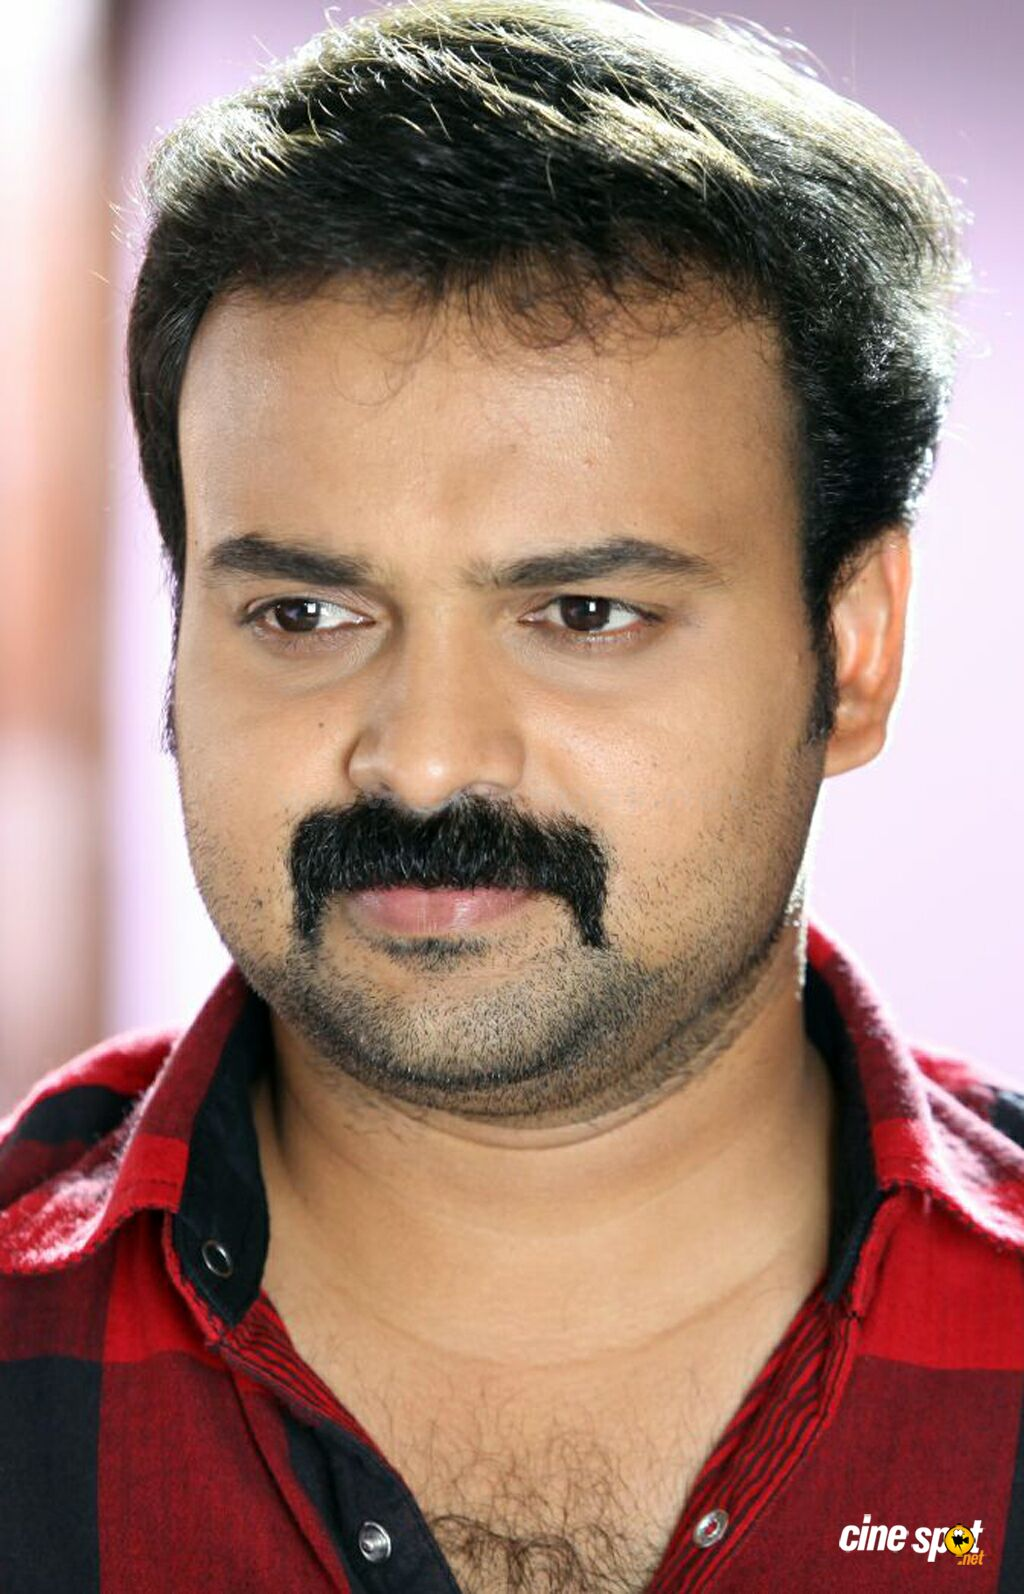 kunchacko boban wifekunchako boban profile, kunchacko boban age, kunchacko boban, kunchako boban new movies, kunchako boban movie list, kunchacko boban and biju menon movies, kunchacko boban wife, kunchacko boban new movie, kunchacko boban son, kunchacko boban facebook, kunchacko boban wedding photos, kunchacko boban child, kunchacko boban songs, kunchacko boban movies list, kunchacko boban hits songs download, kunchacko boban date of birth, kunchacko boban songs list, kunchacko boban height, kunchacko boban son photos